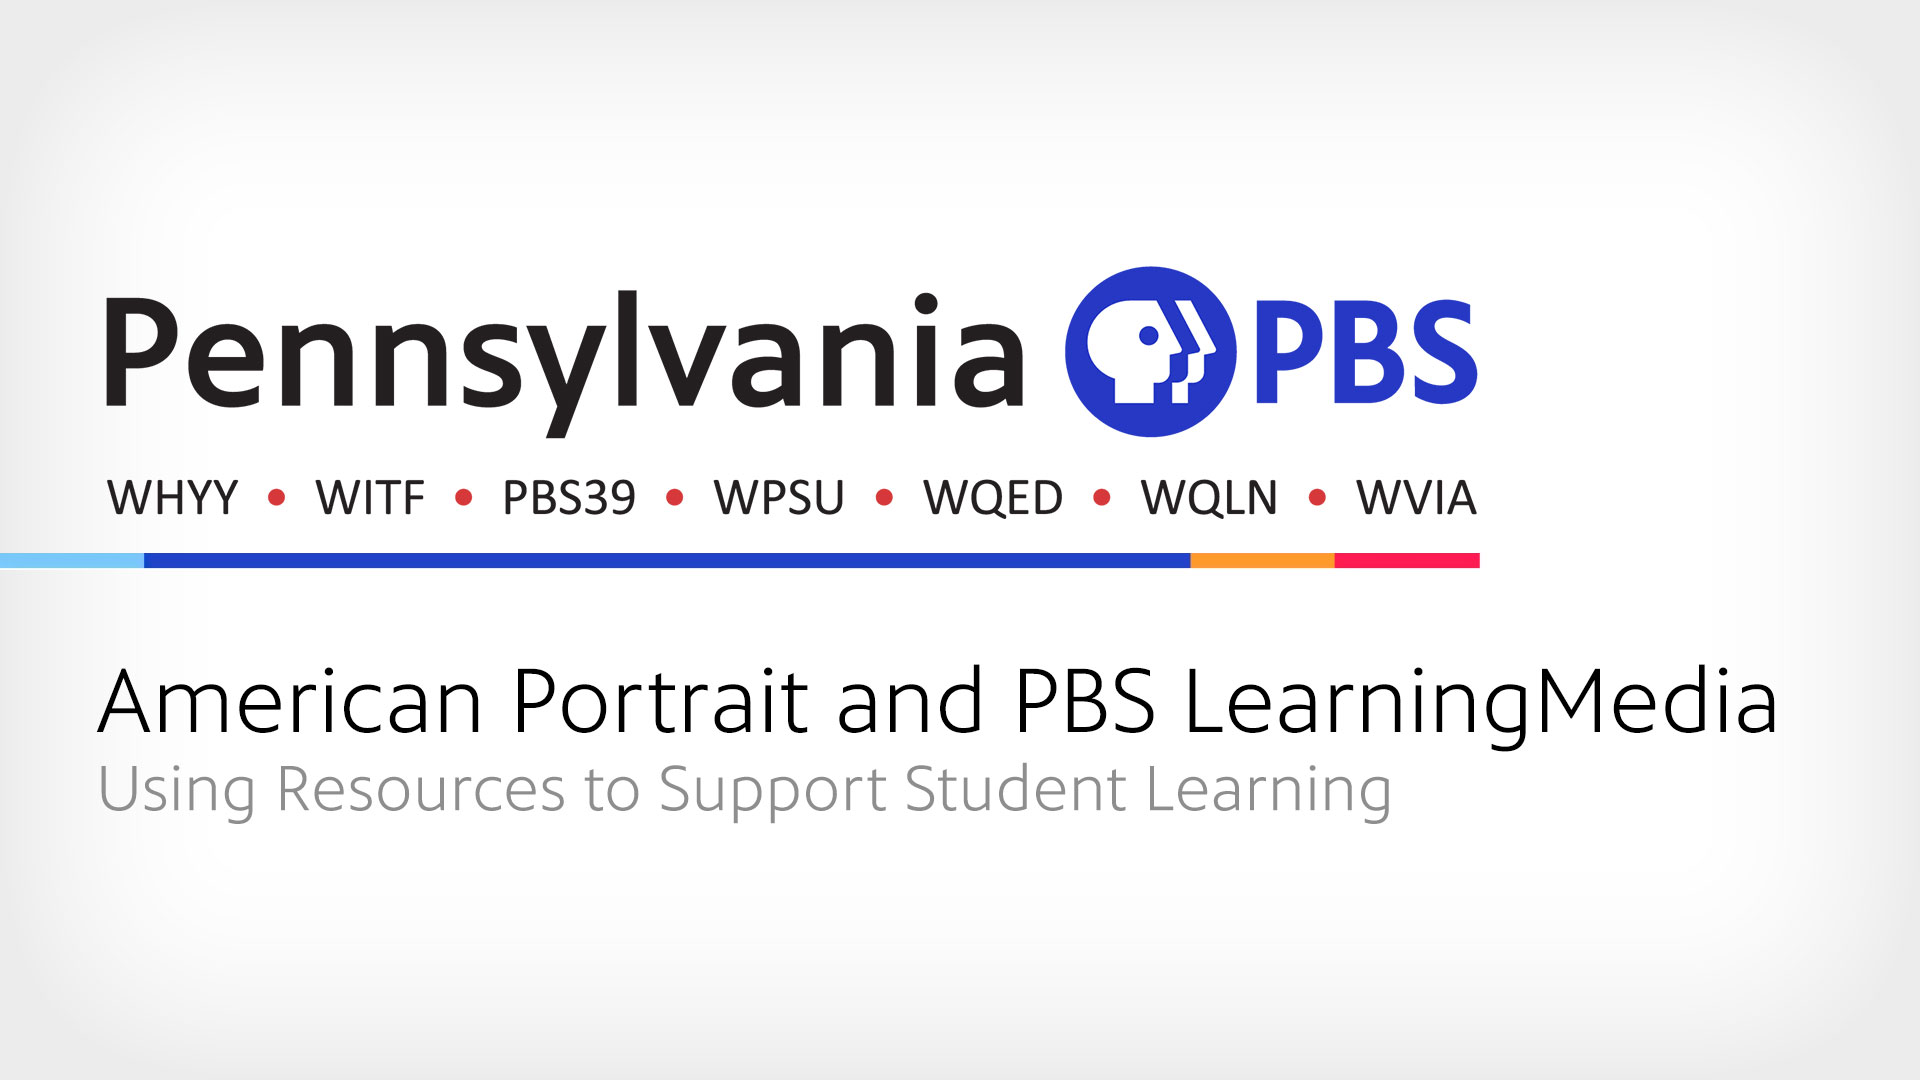 American Portrait and PBS LearningMedia Using Resources to Support Student Learning